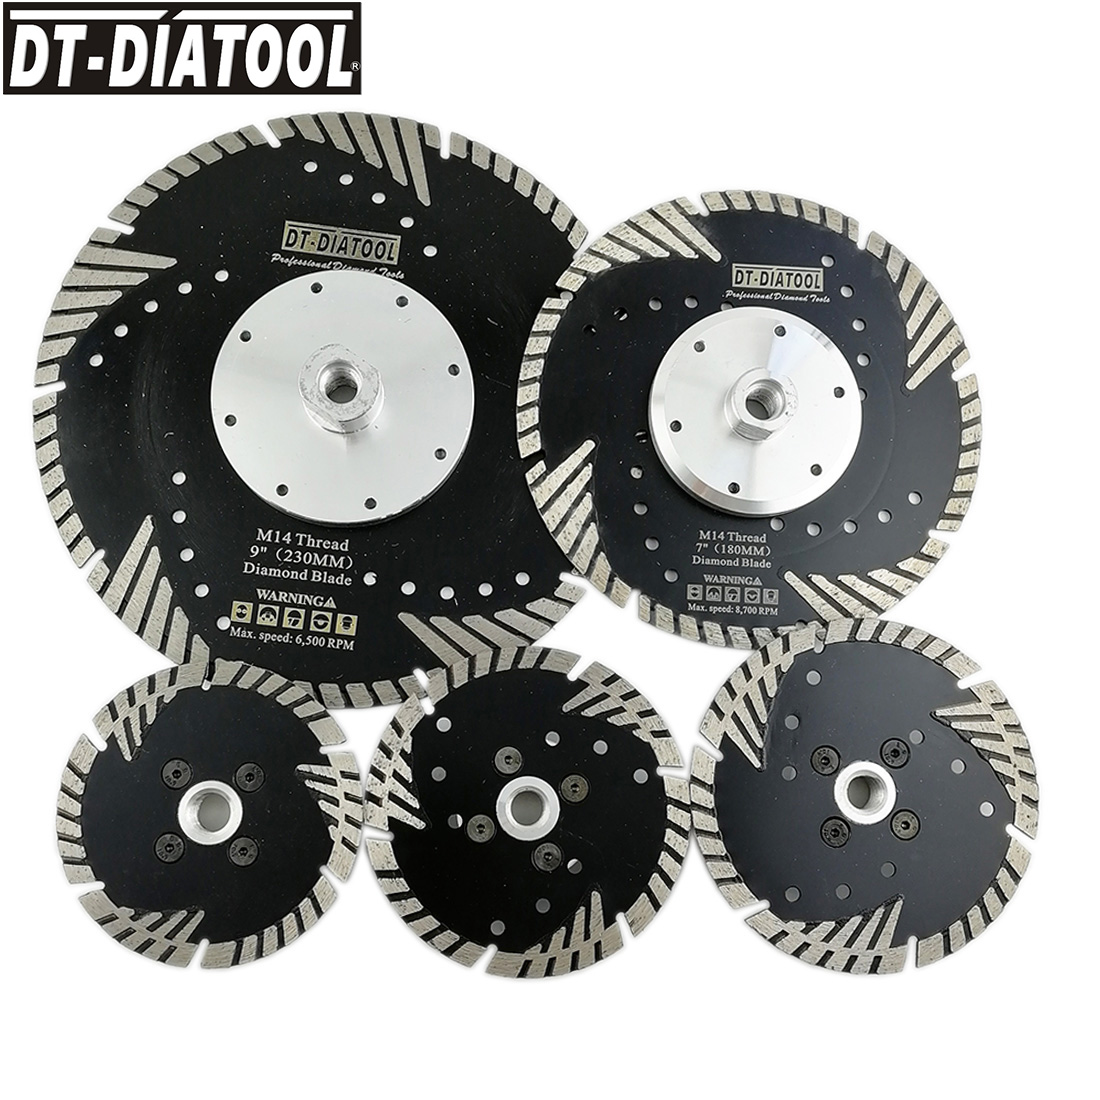 DT-DIATOOL 1pc Diamond Cutting Disc With Slant Protection Teeth M14 Or 5/8-11 Thread Saw Blade For Stone Granite Marbel Concrete